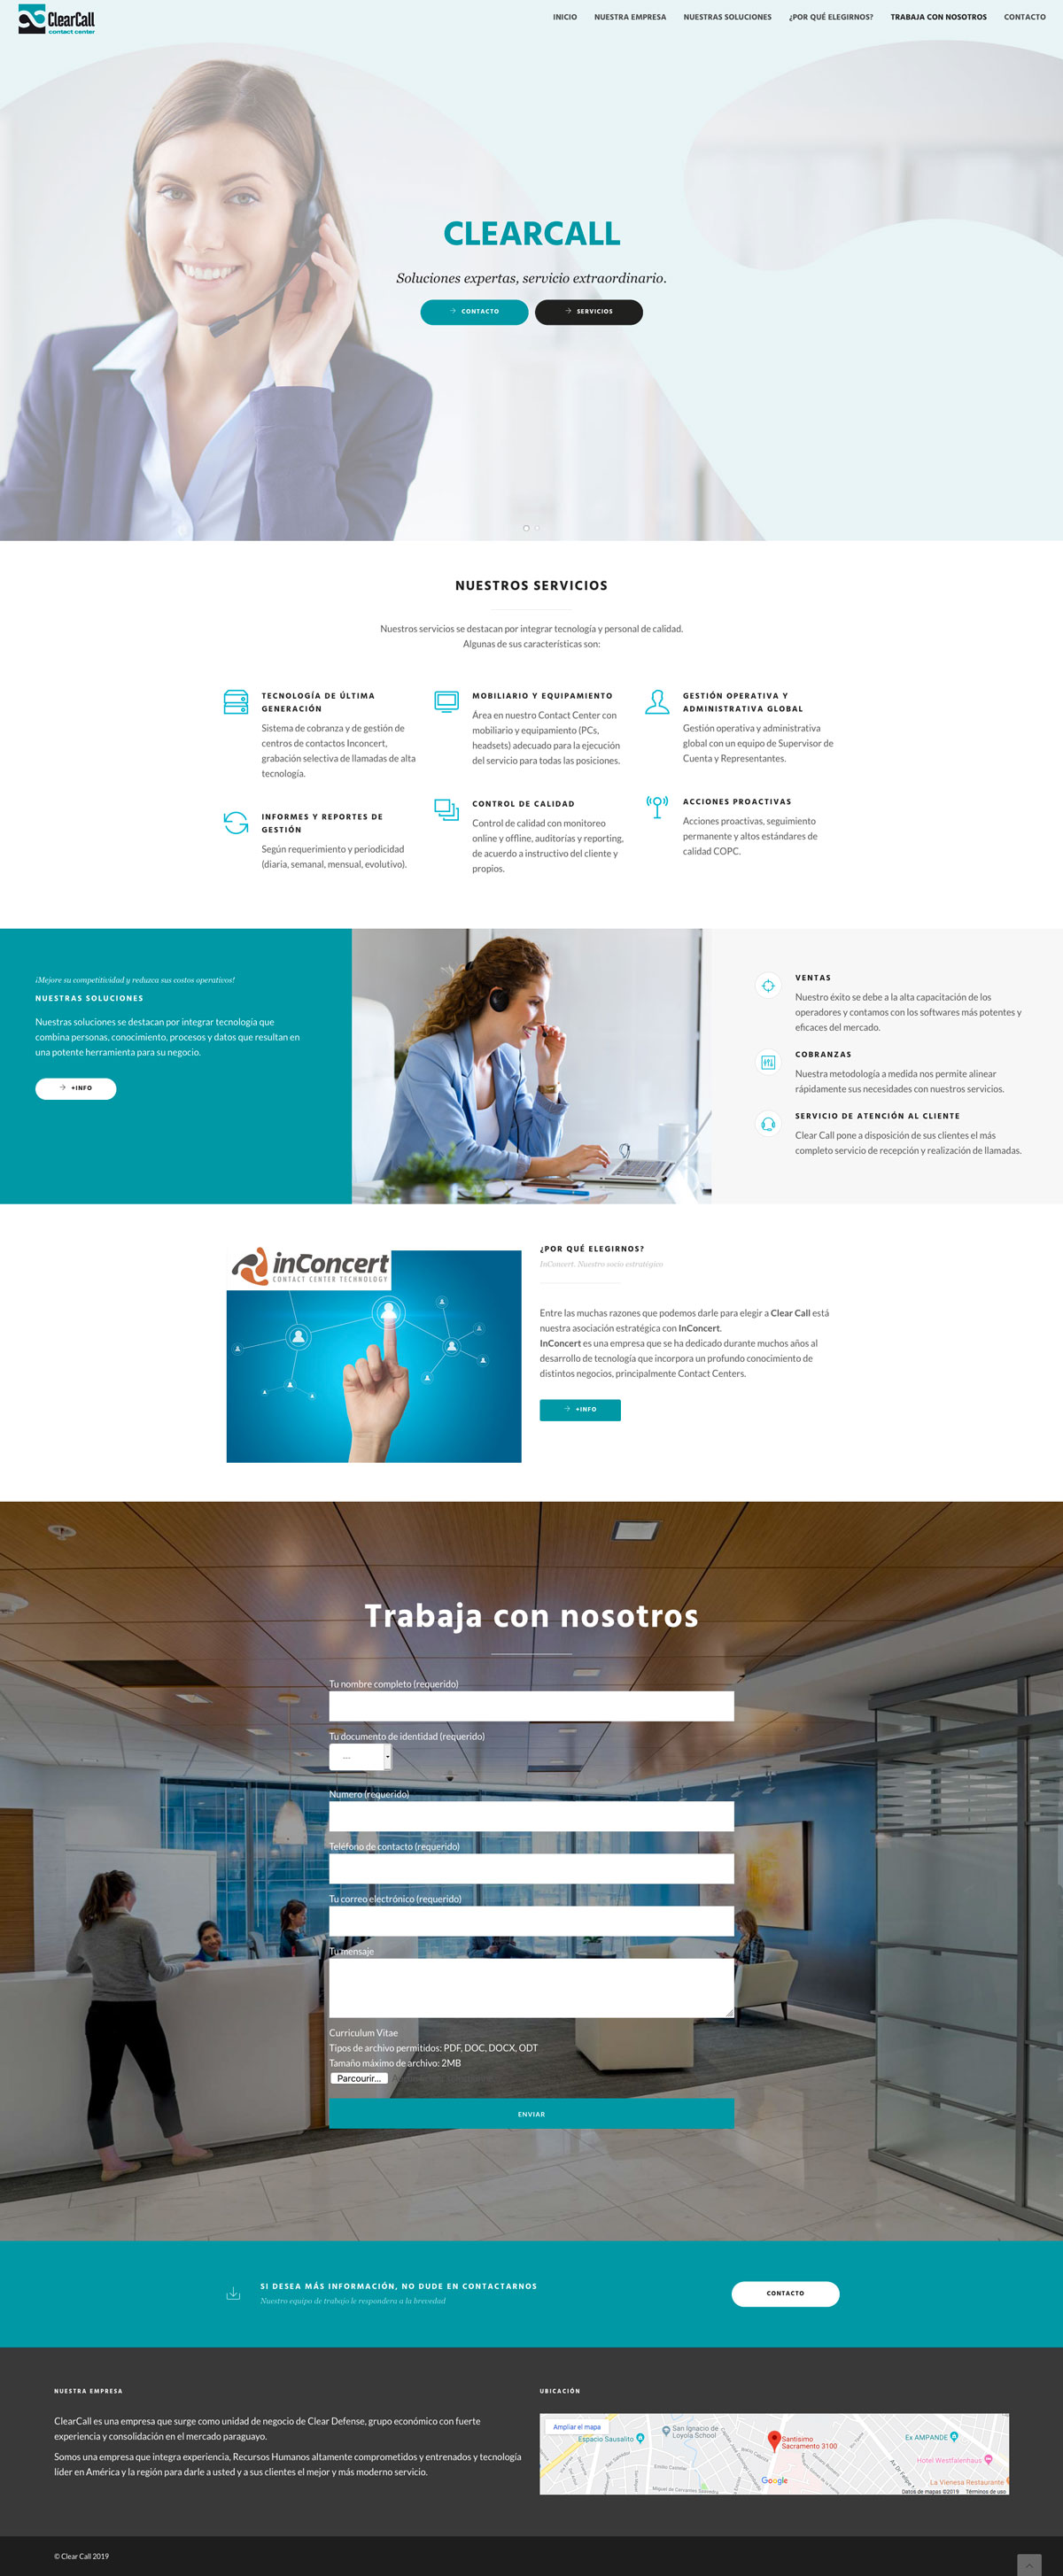 2019-08-08-clearcall